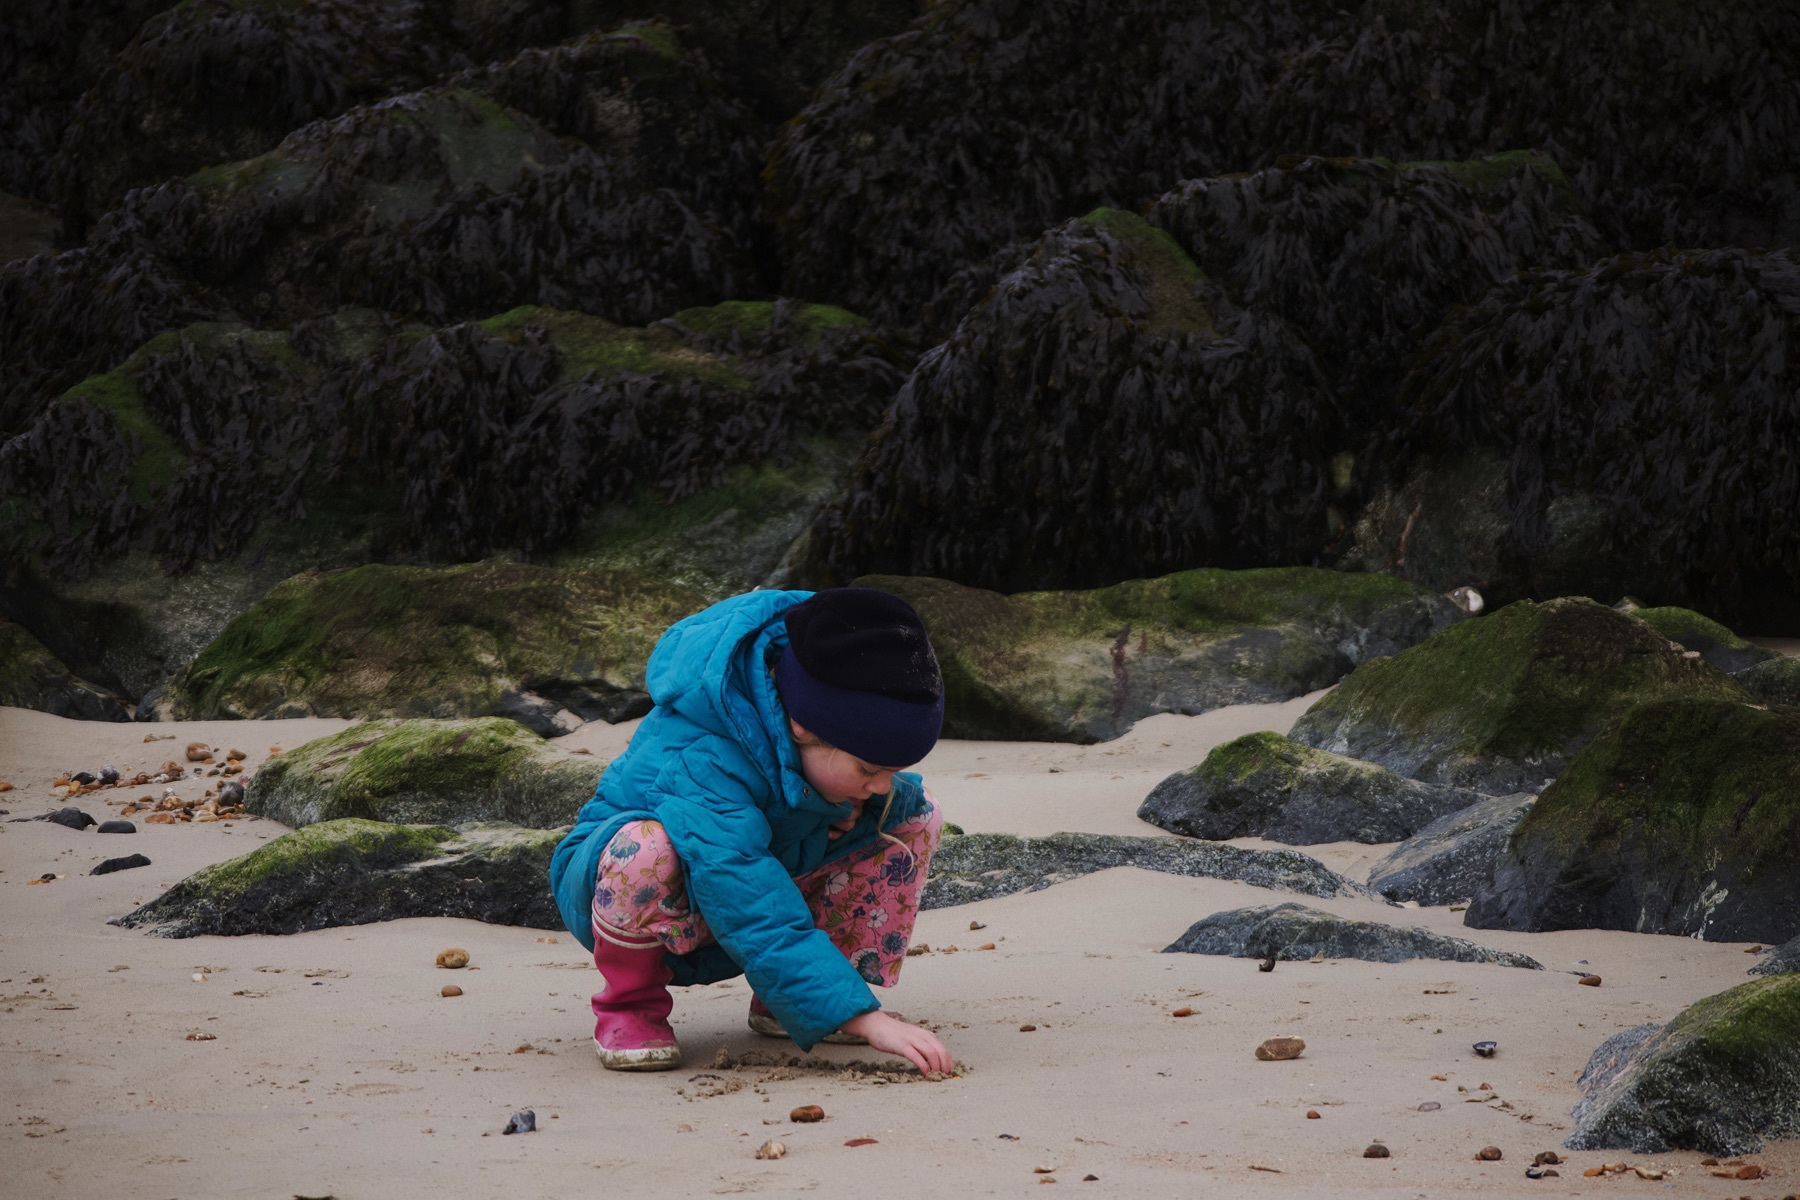 A girl digging in the sand by a pile of rocks at low tide.